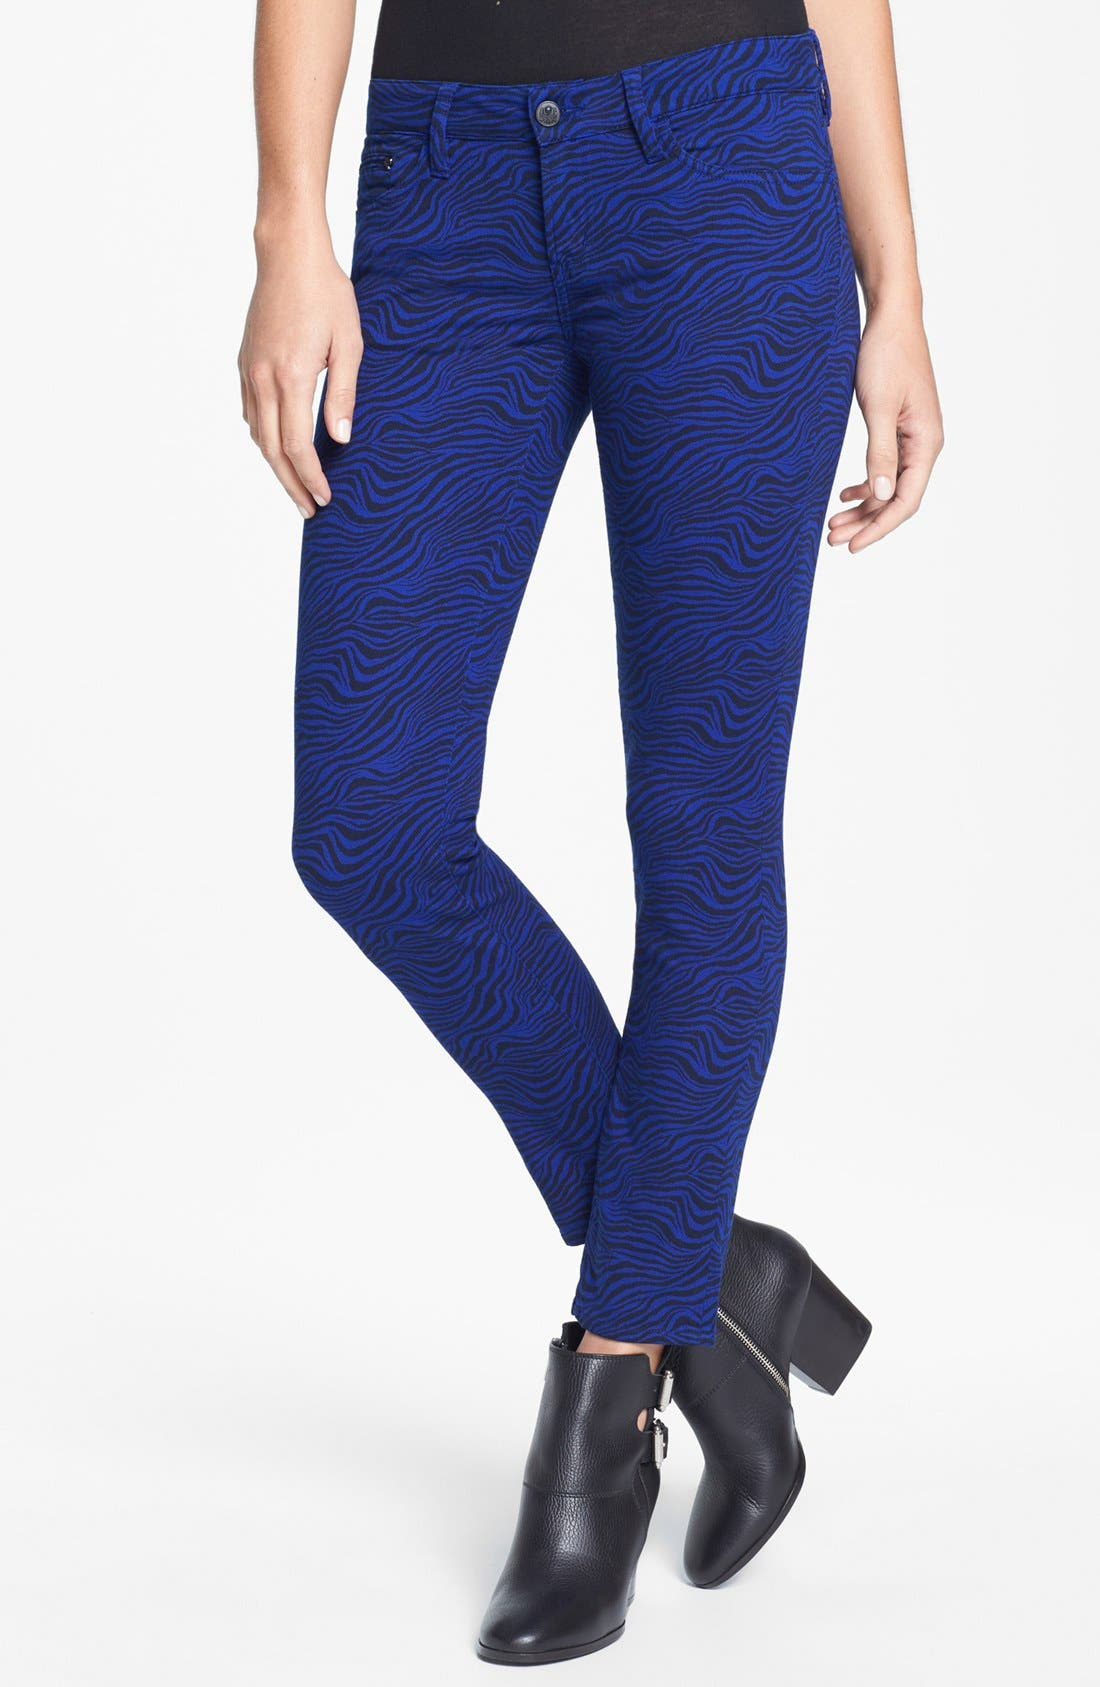 Main Image - The Kooples Zebra Print Stretch Skinny Jeans